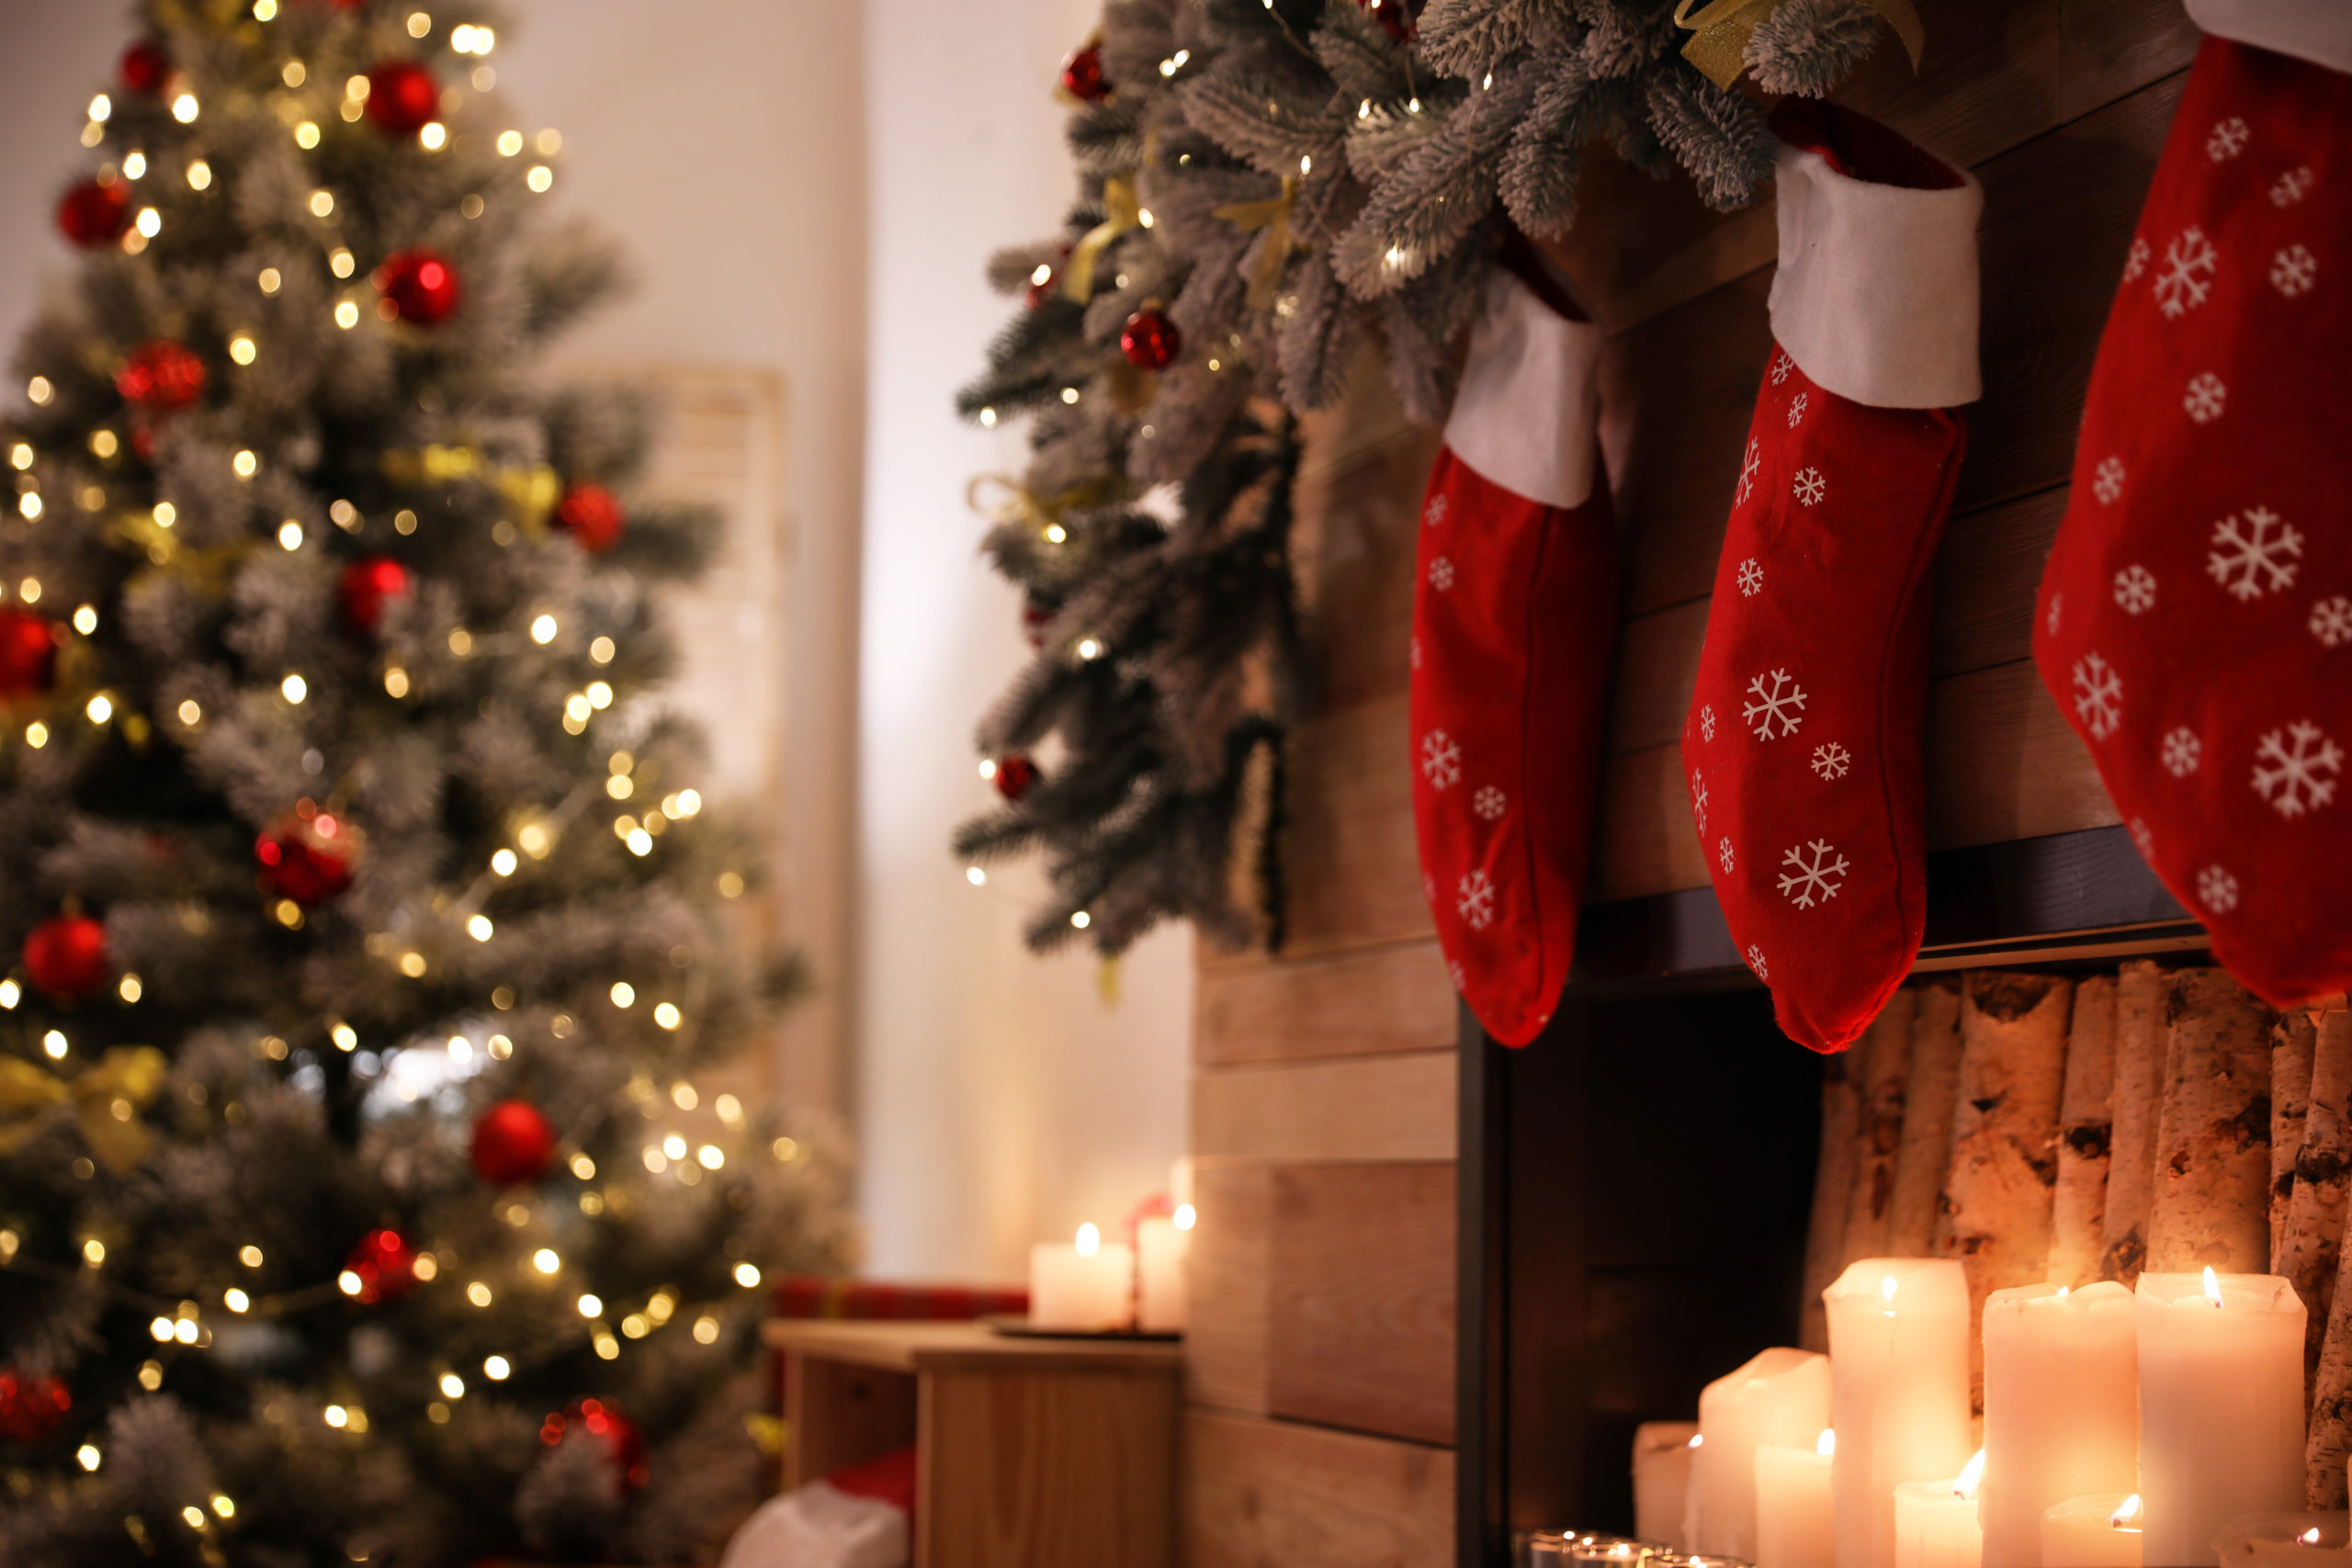 Christmas tree and stockings by the fireplace.